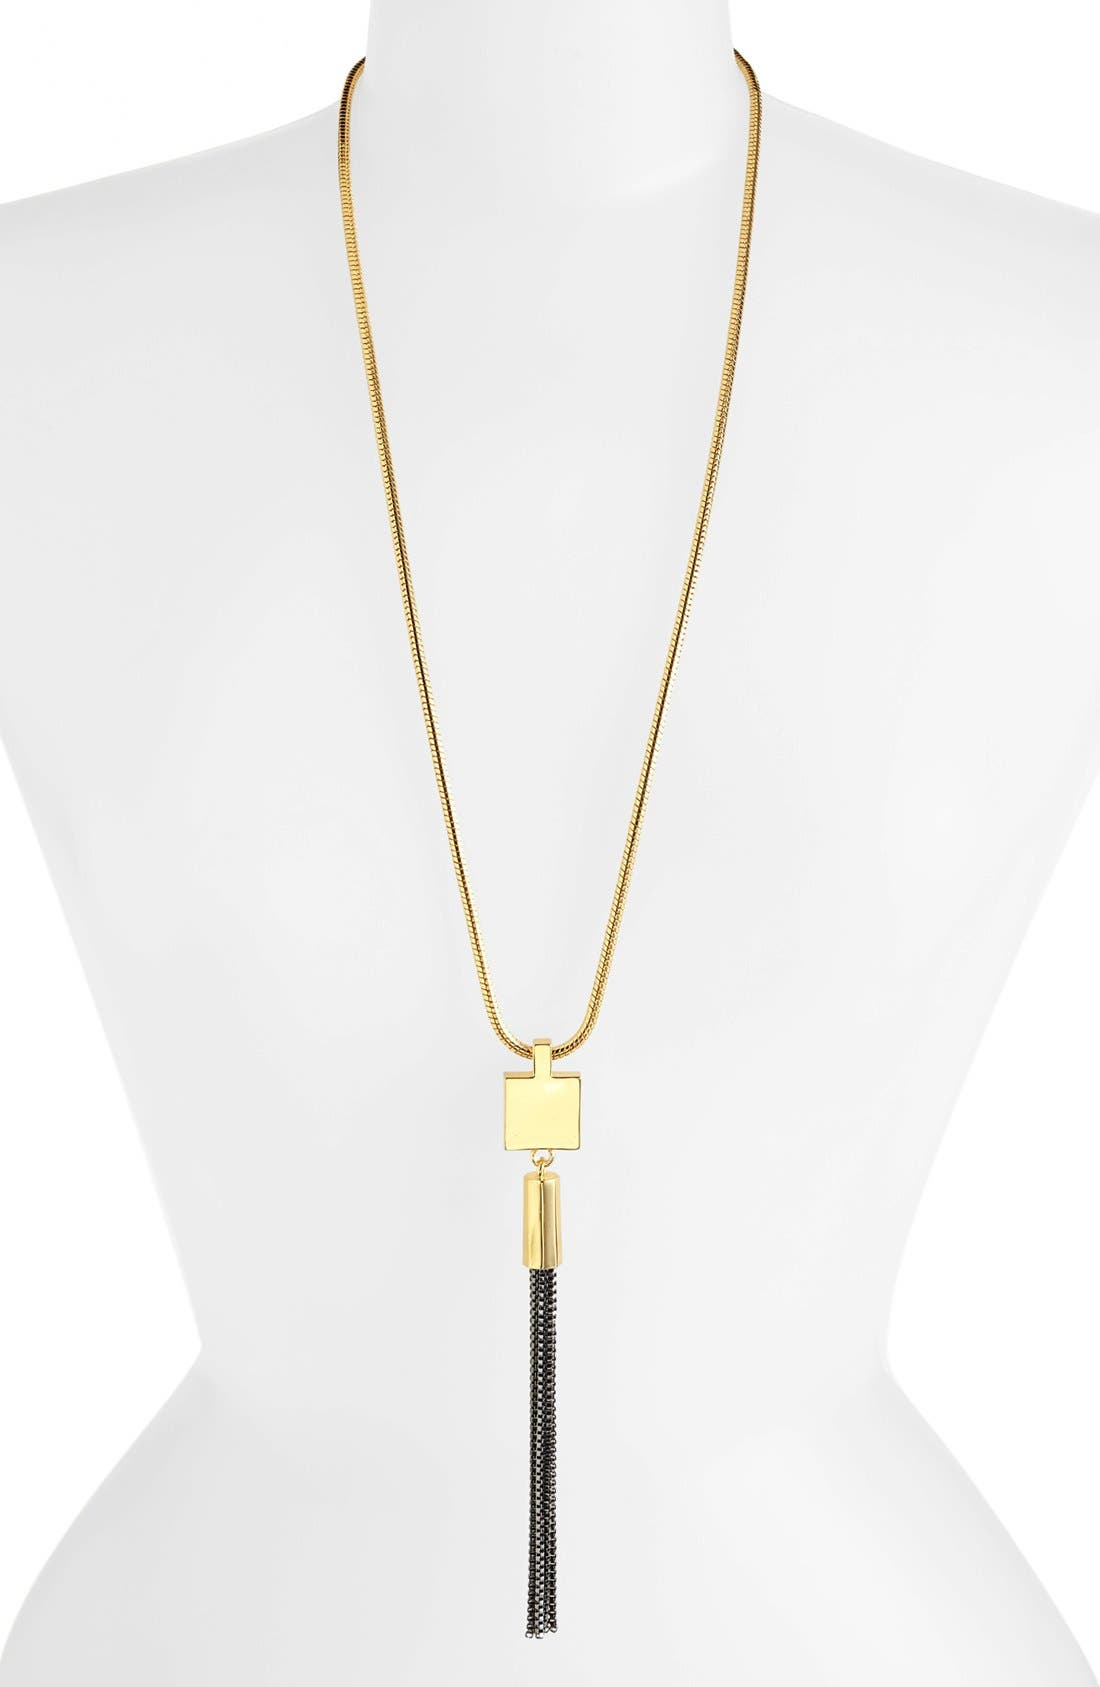 Alternate Image 1 Selected - Vince Camuto 'Tour of Duty' Tassel Necklace